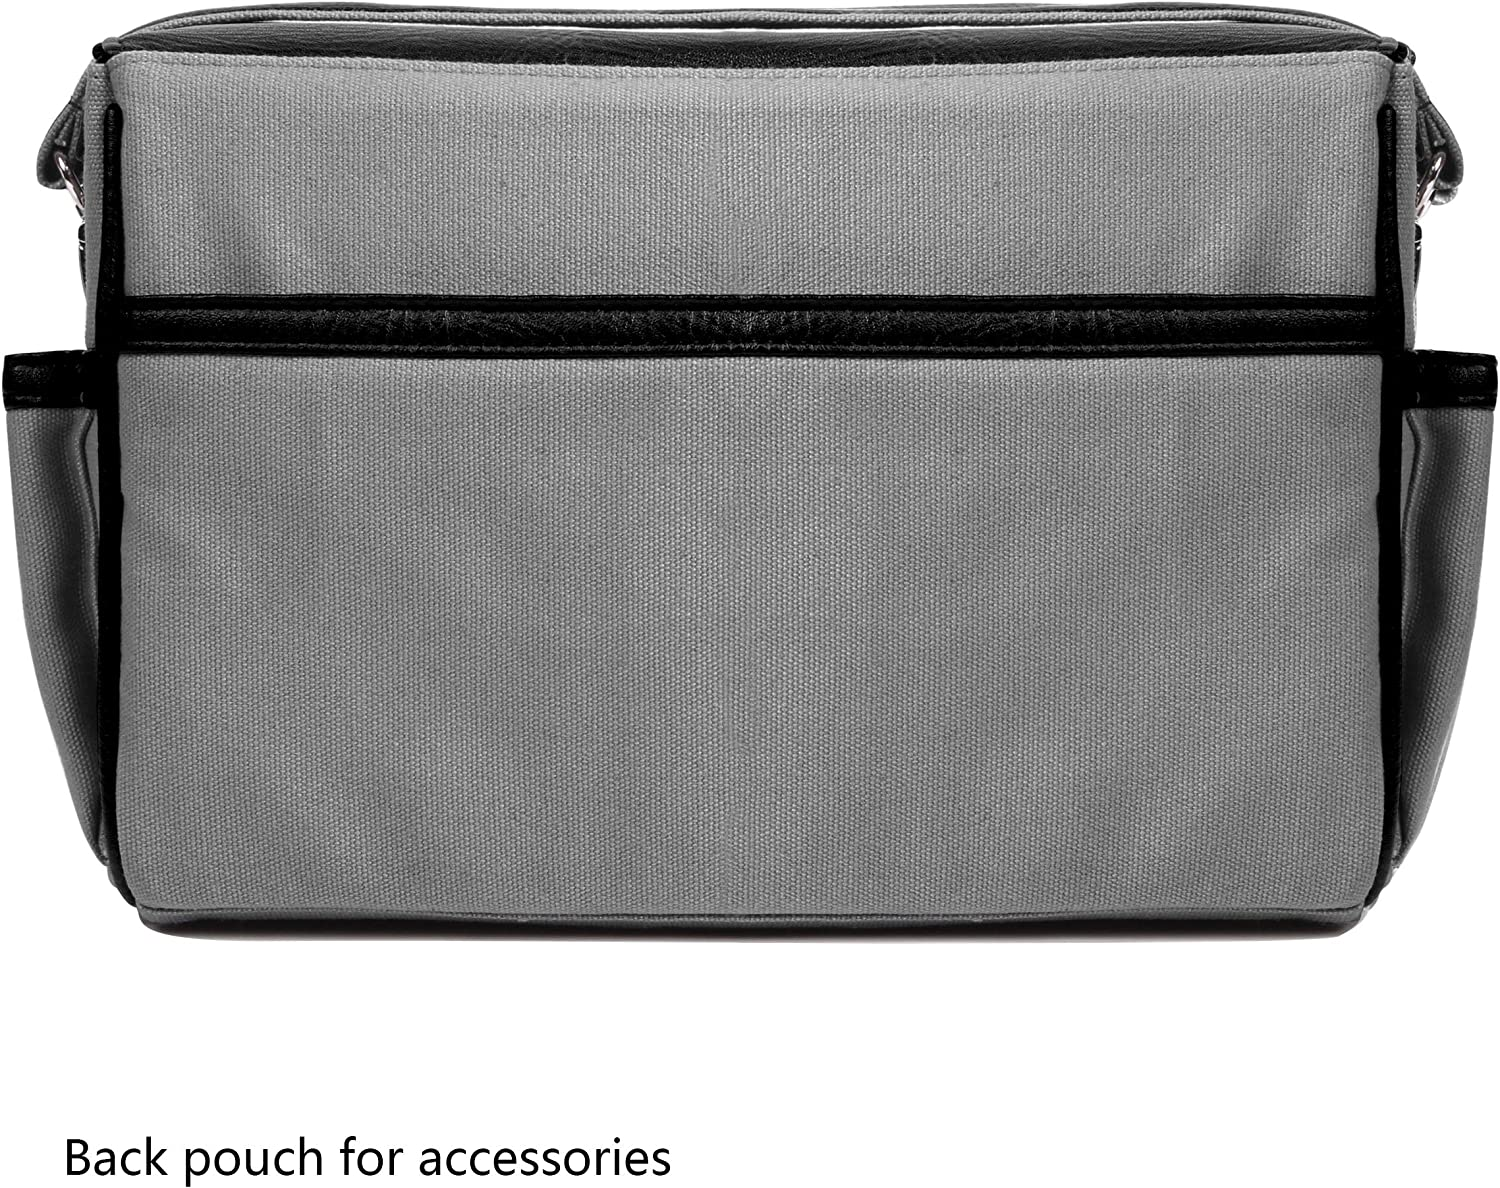 for Panasonic for Nikon for Olympus Mirrorless Camera and Accessory Shoulder Bag Shock Resistant Case for Canon Compact for Samsung for Pentax for Fujifilm for DJI for Light for Sony